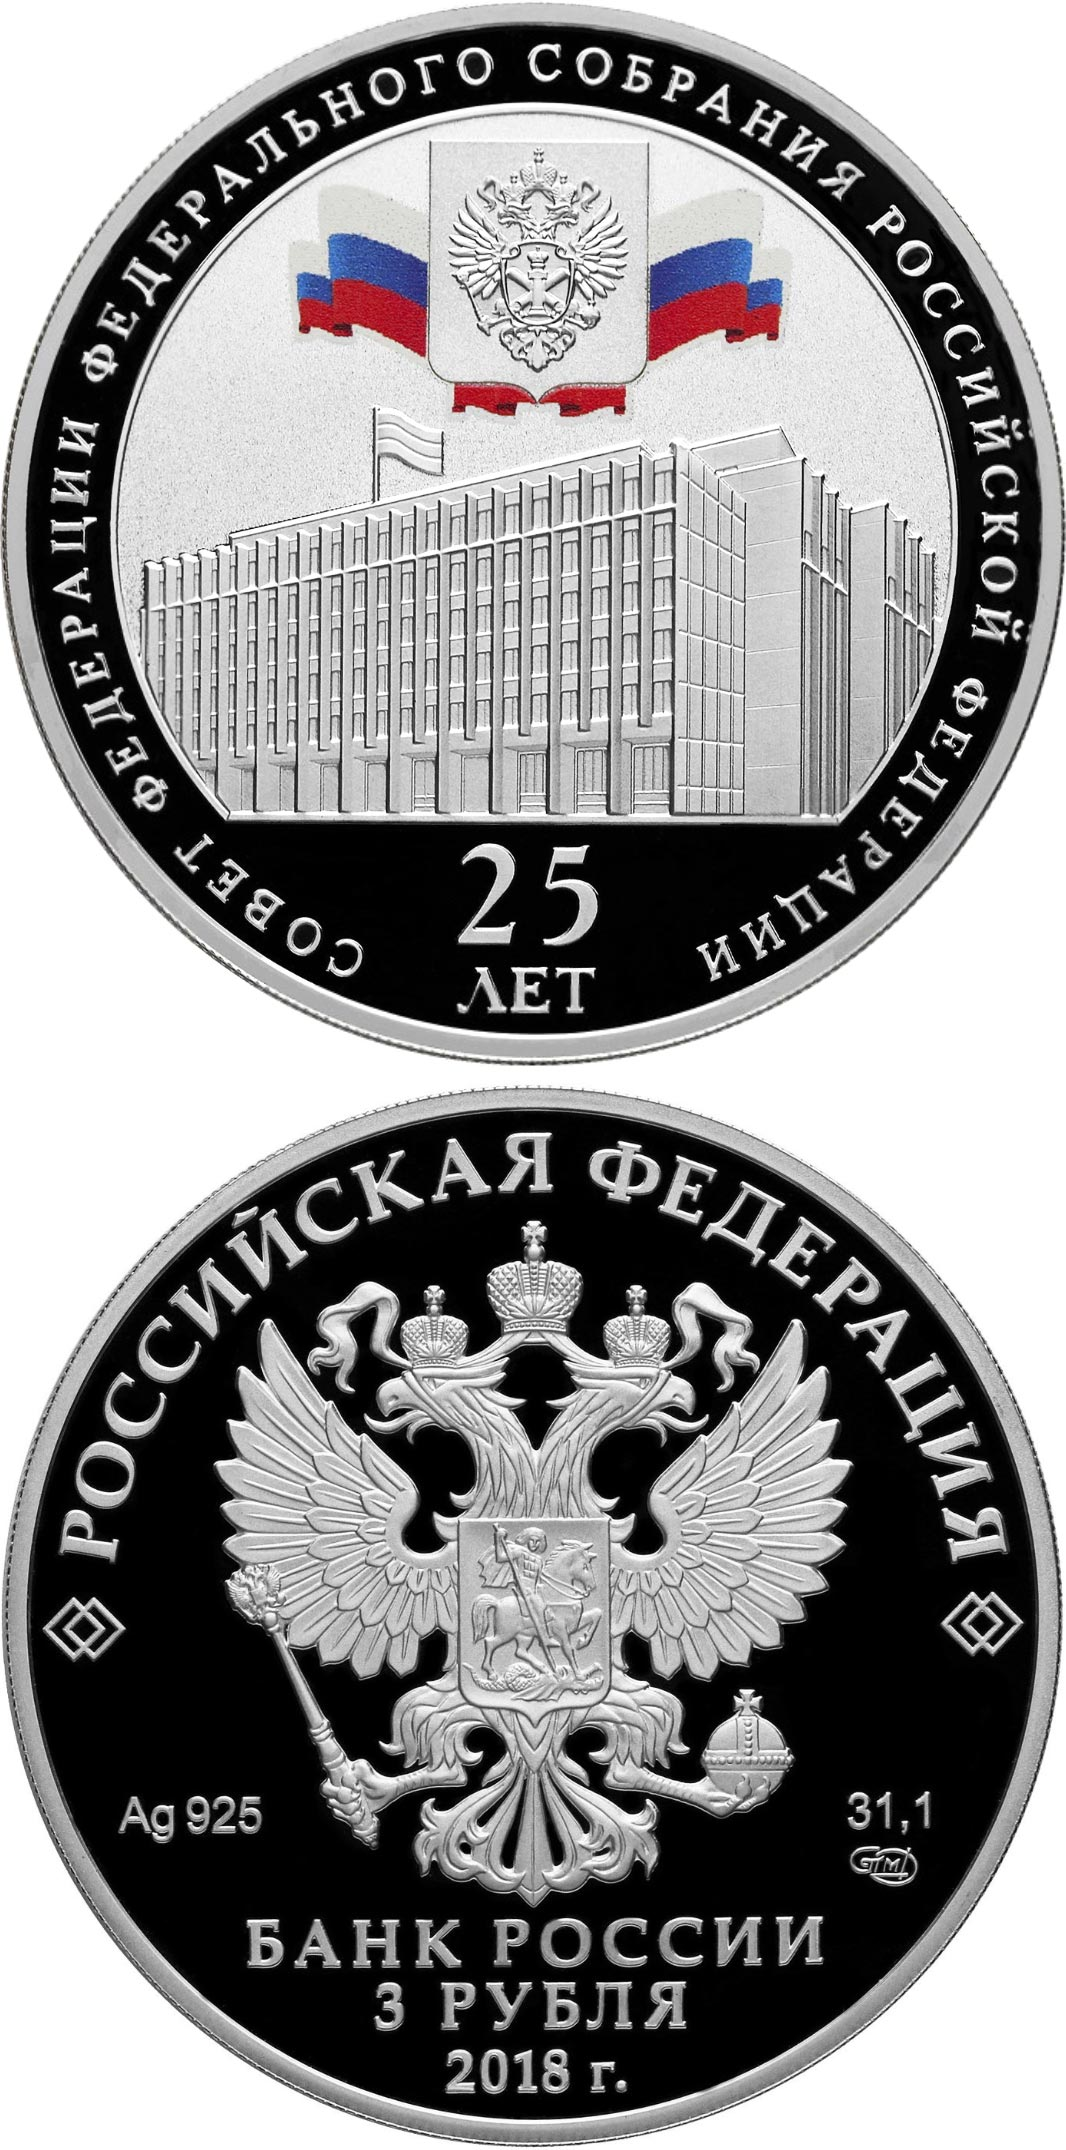 Image of 3 rubles coin – Federation Council of the Federal Assembly of the Russian Federation  | Russia 2018.  The Silver coin is of Proof quality.